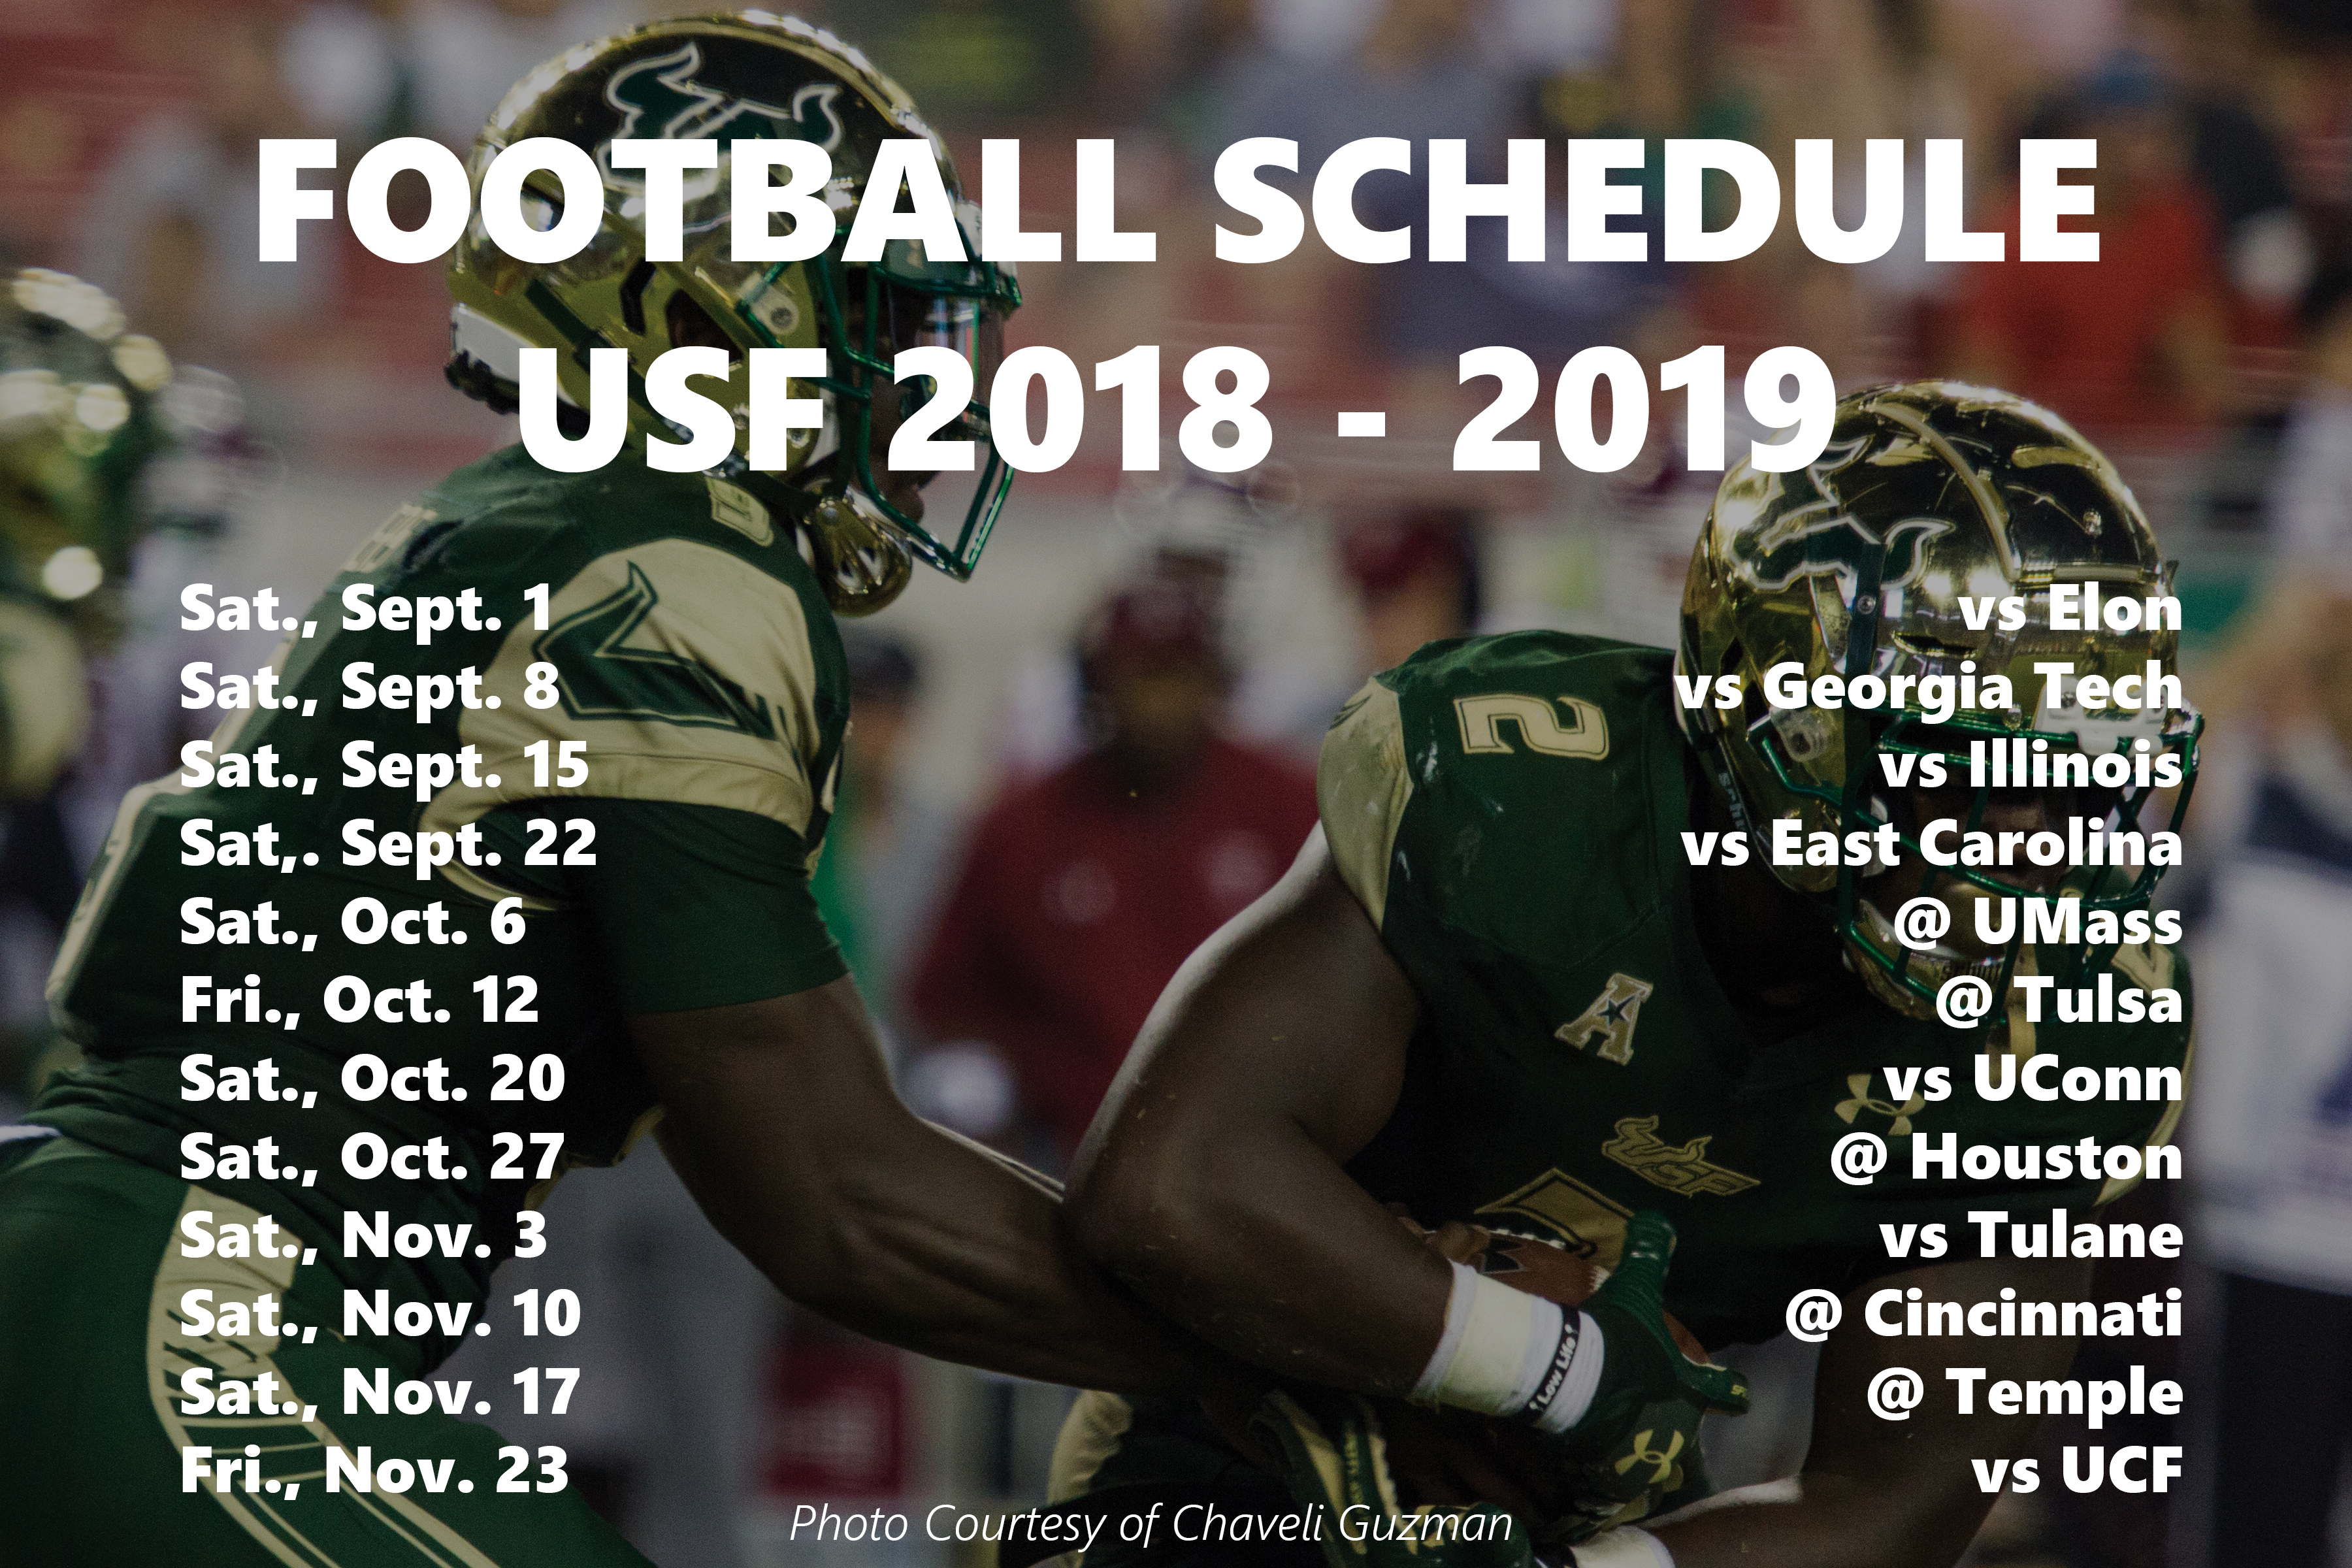 Usf Schedule 2019 USF releases football schedule – The Crow's Nest